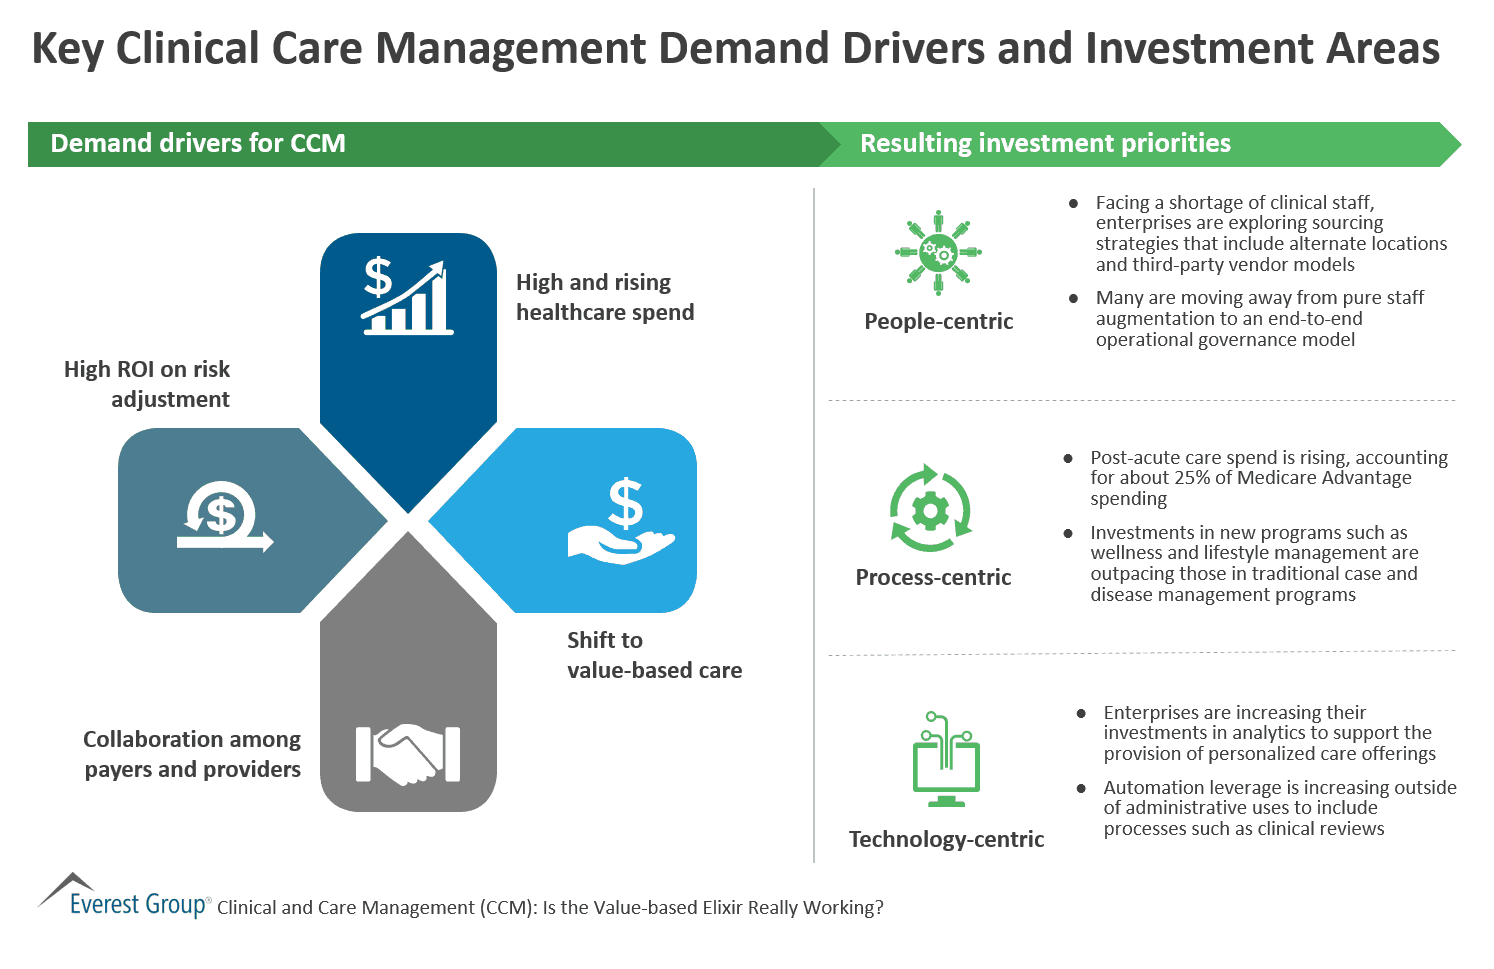 Key Clinical Care Management Demand Drivers and Investment Areas